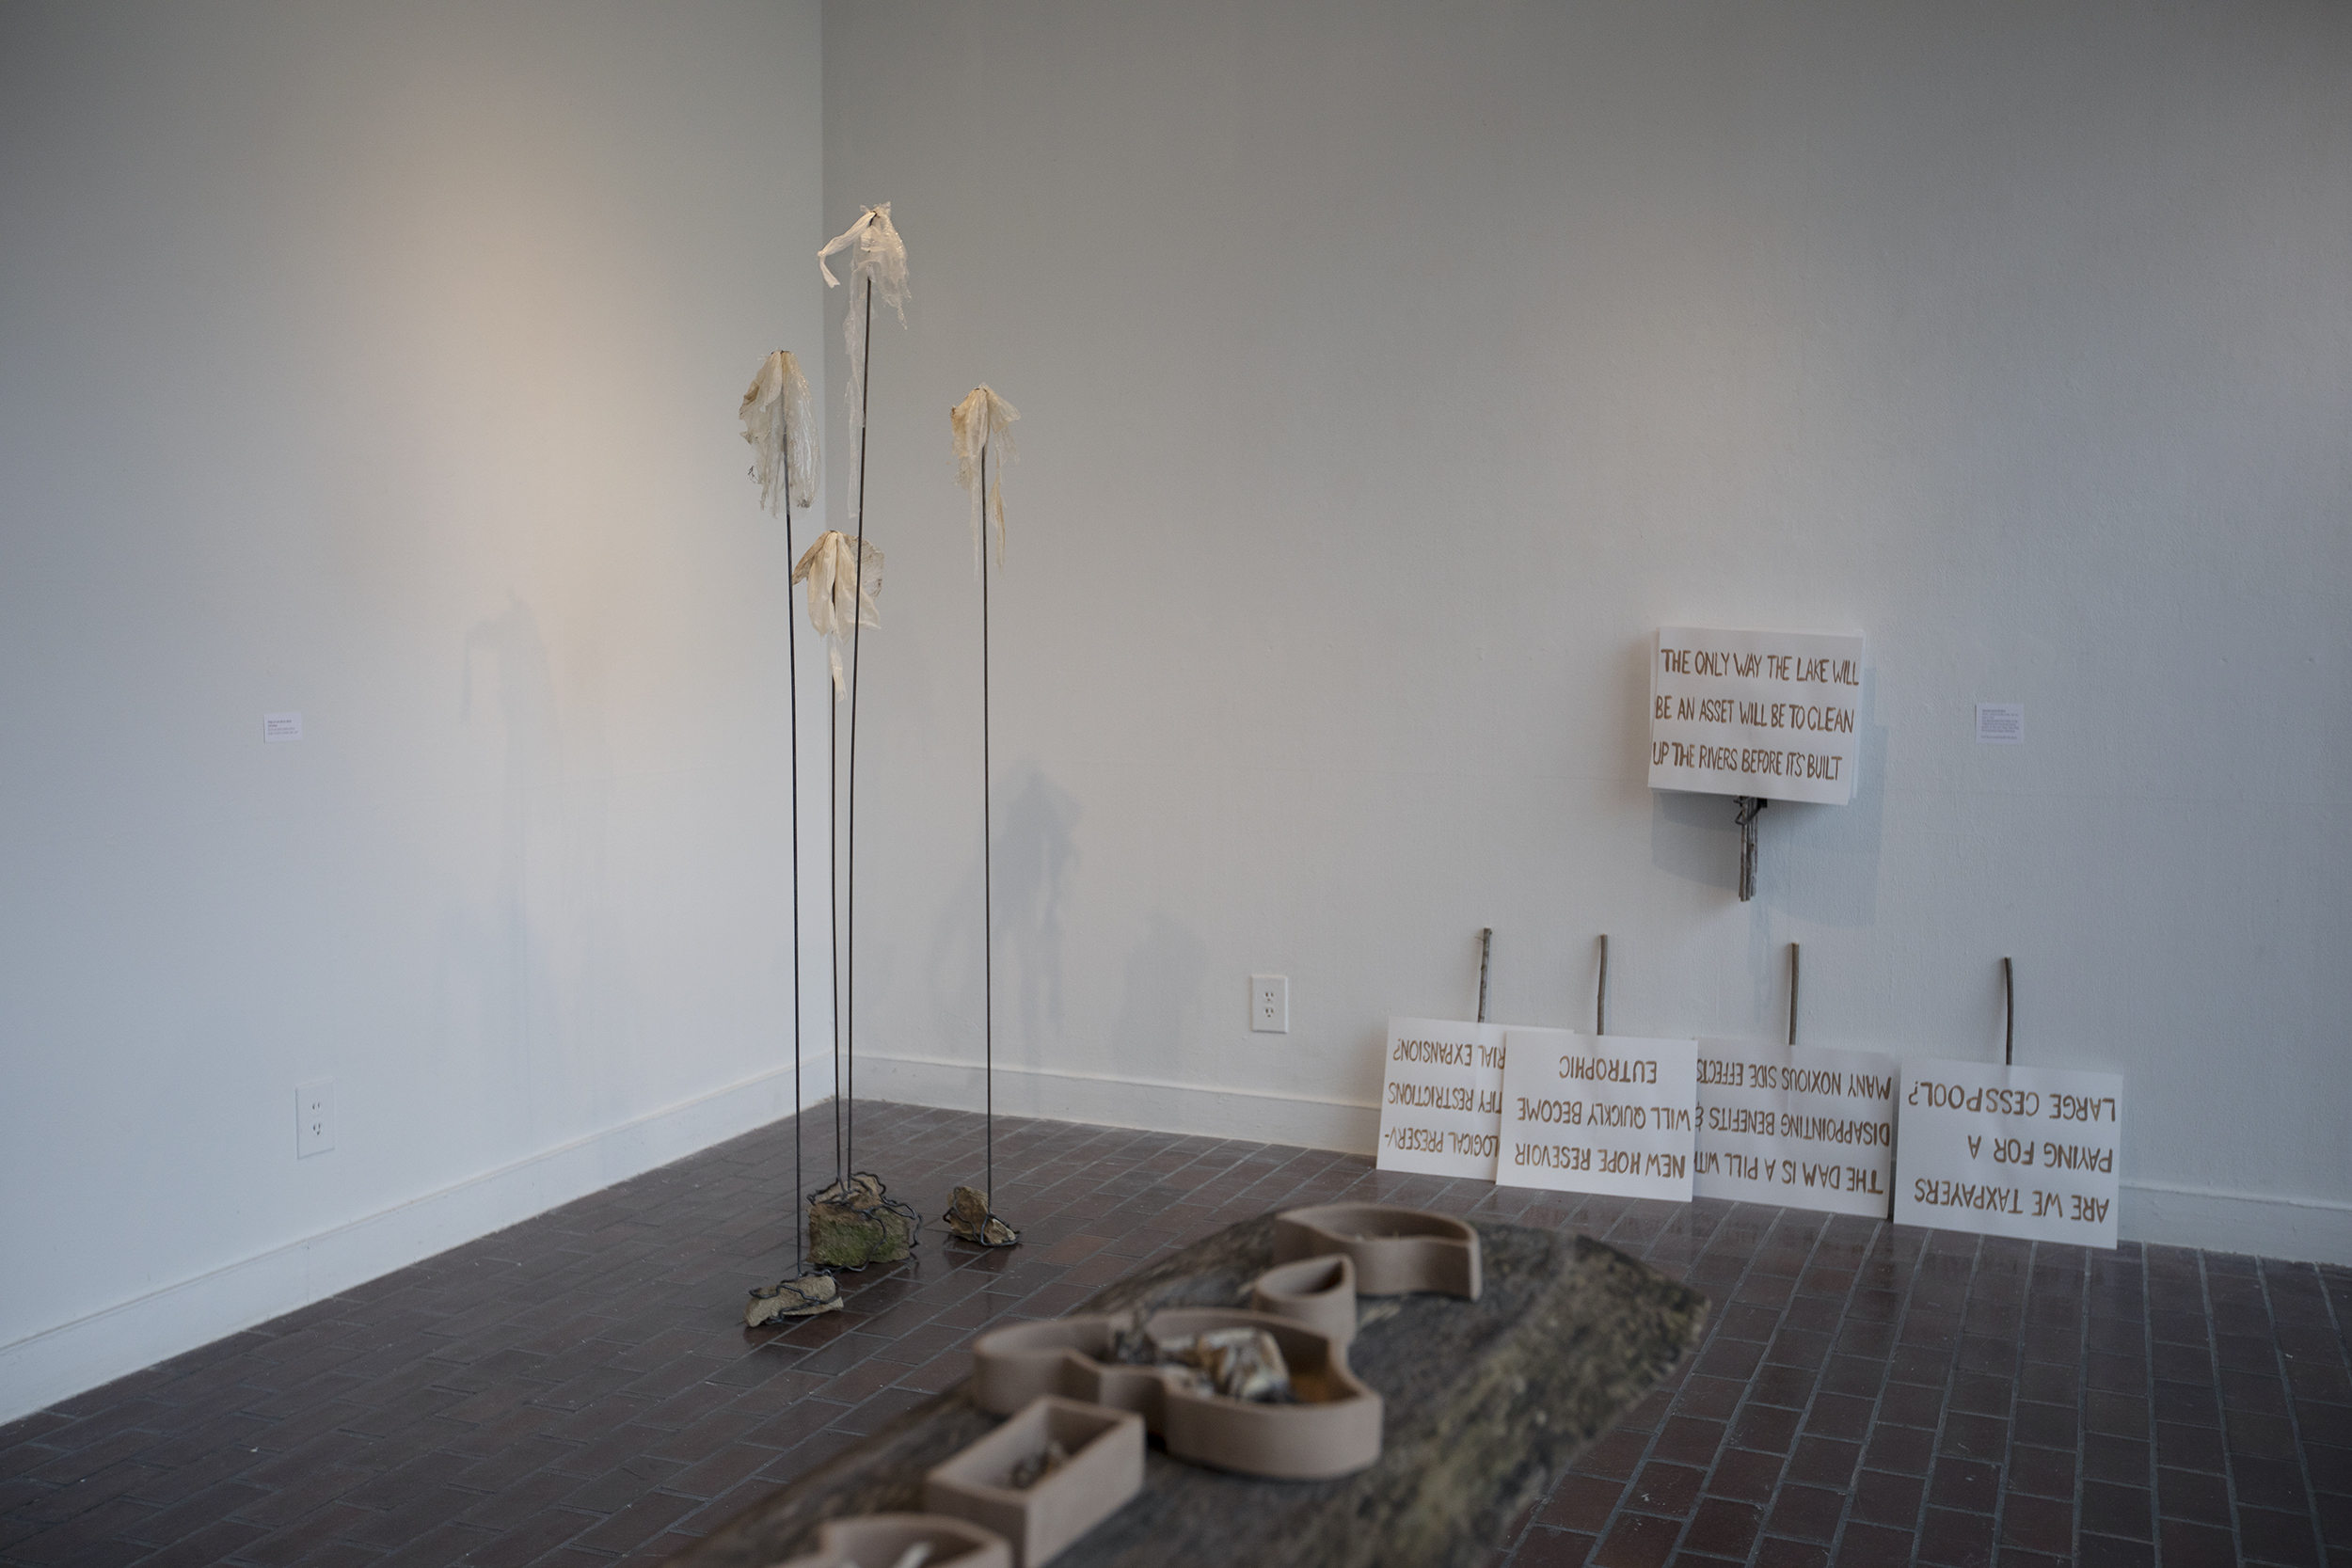 Detail shot of Ayla Gizlice's project, showing the metal stands withe plastic bags attached, picket signs lined against the wall, and clay vessels holding fish bones on a table.